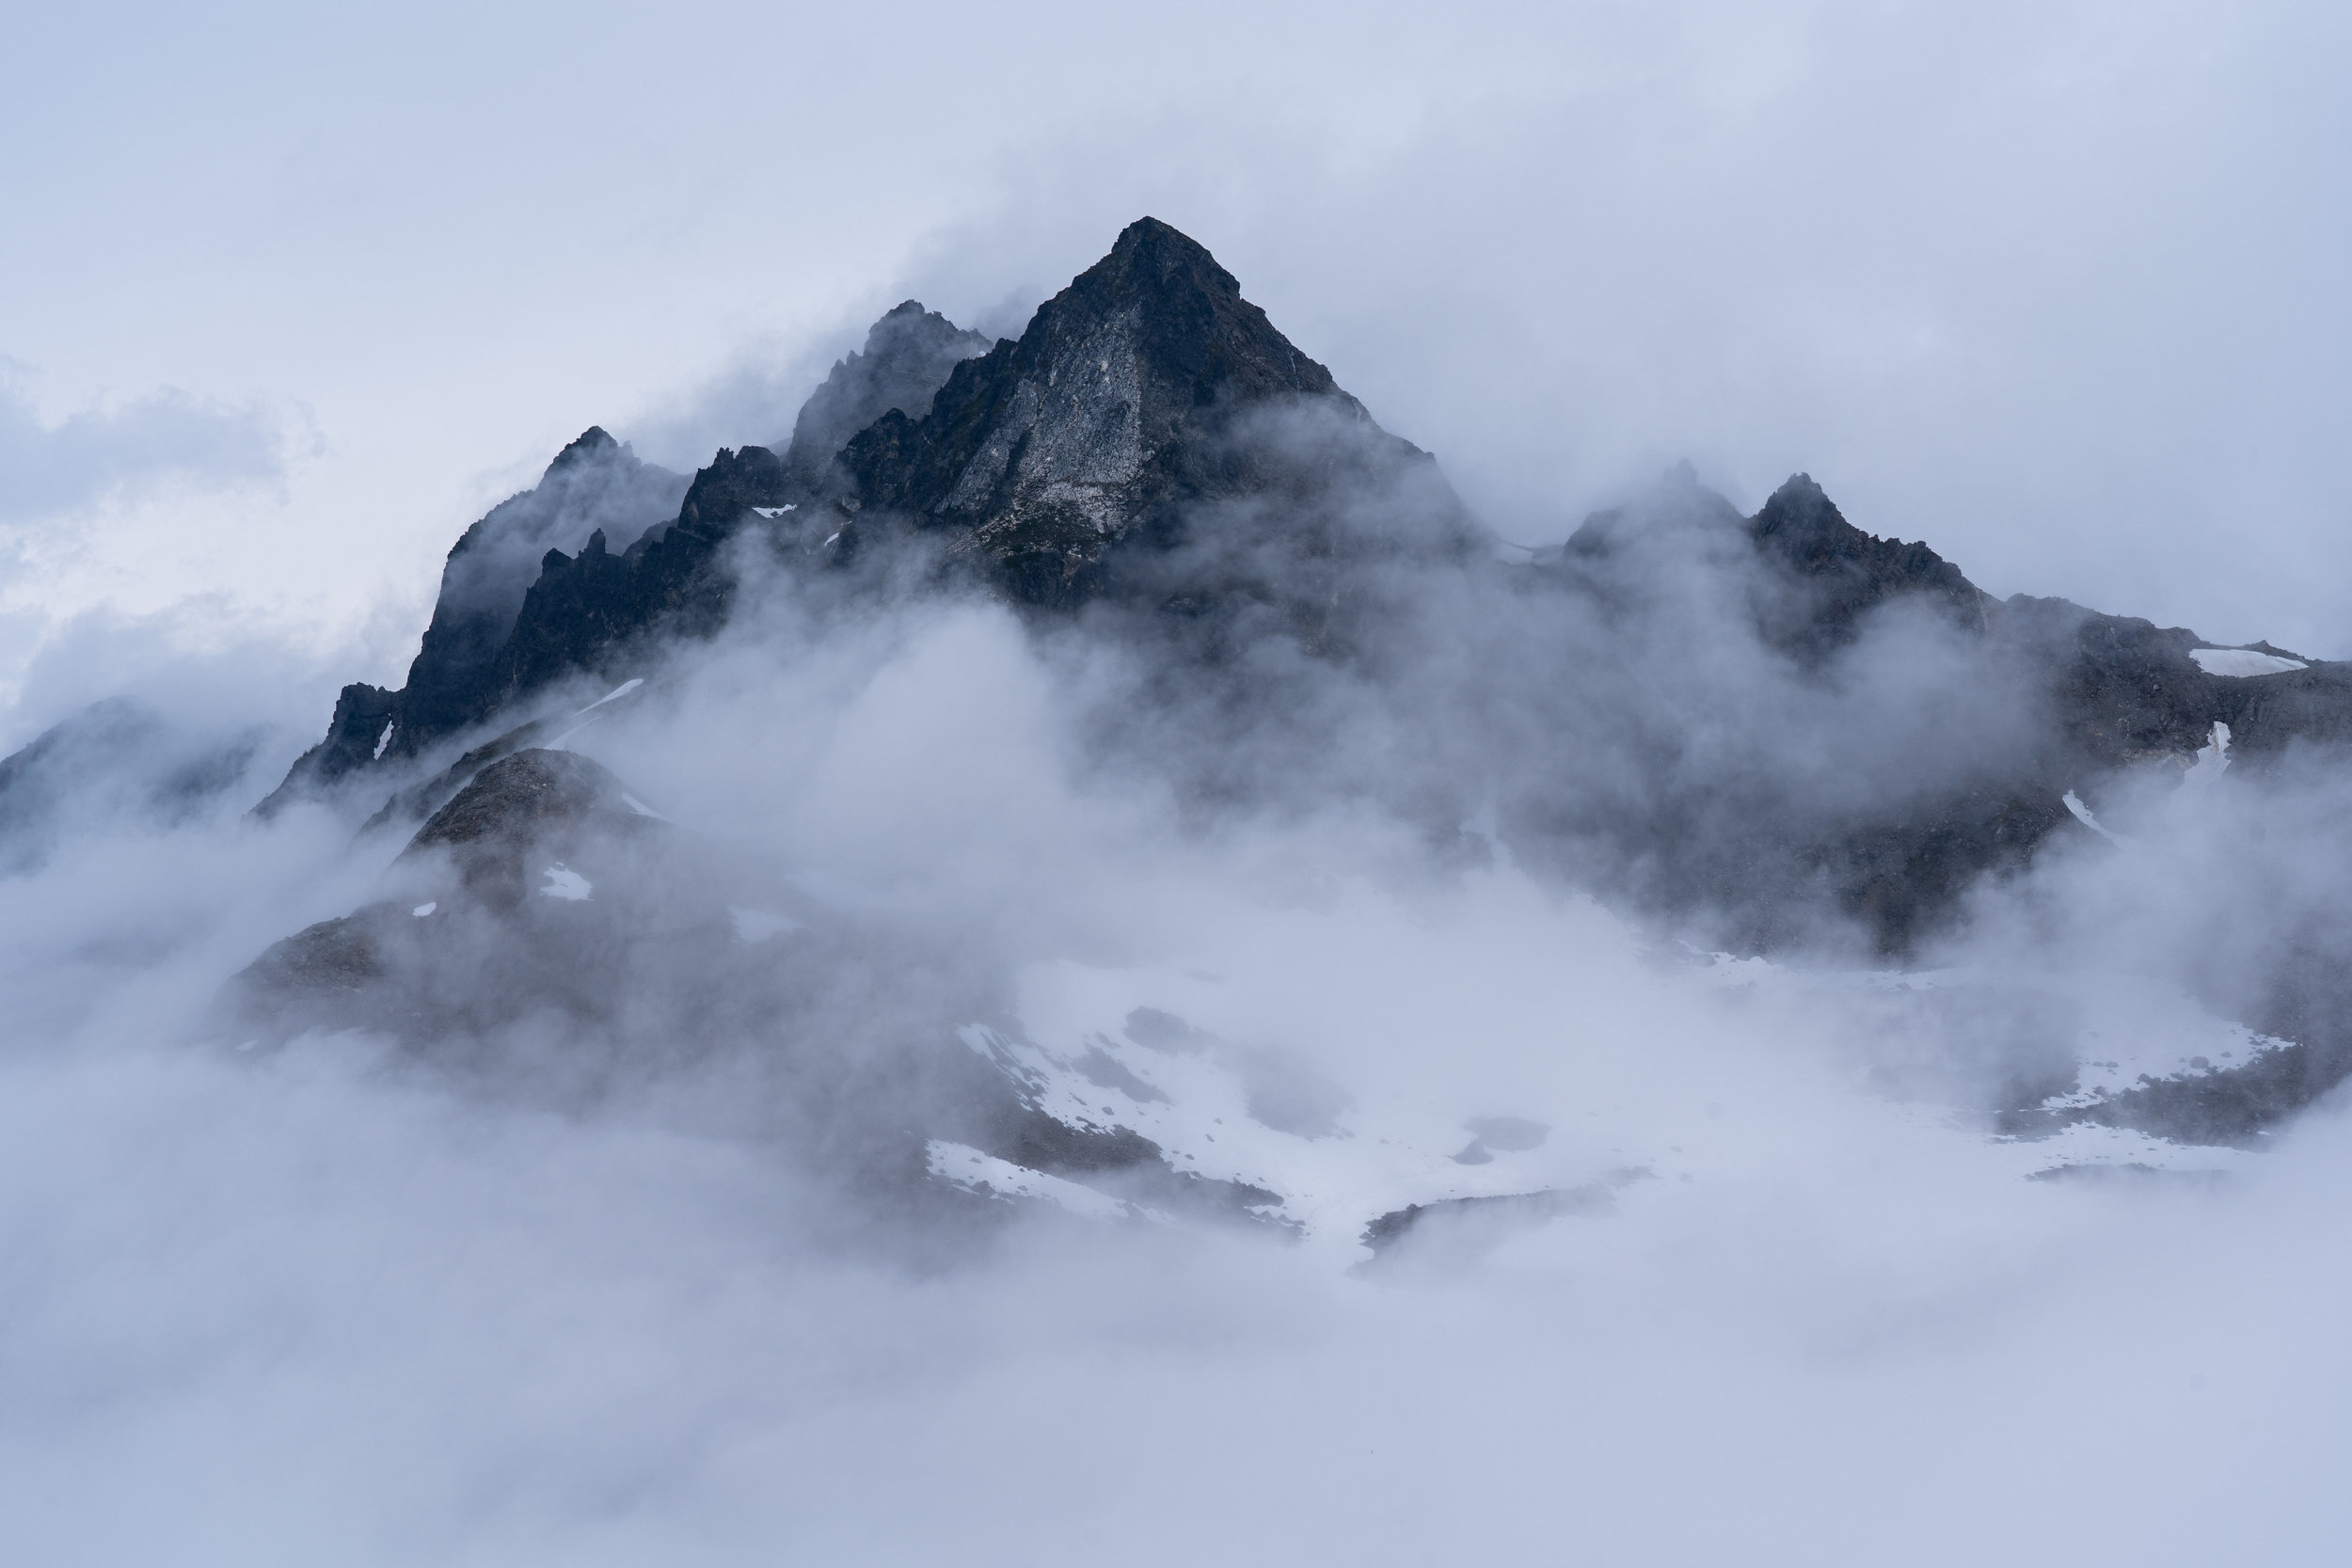 Clouds dancing around peaks